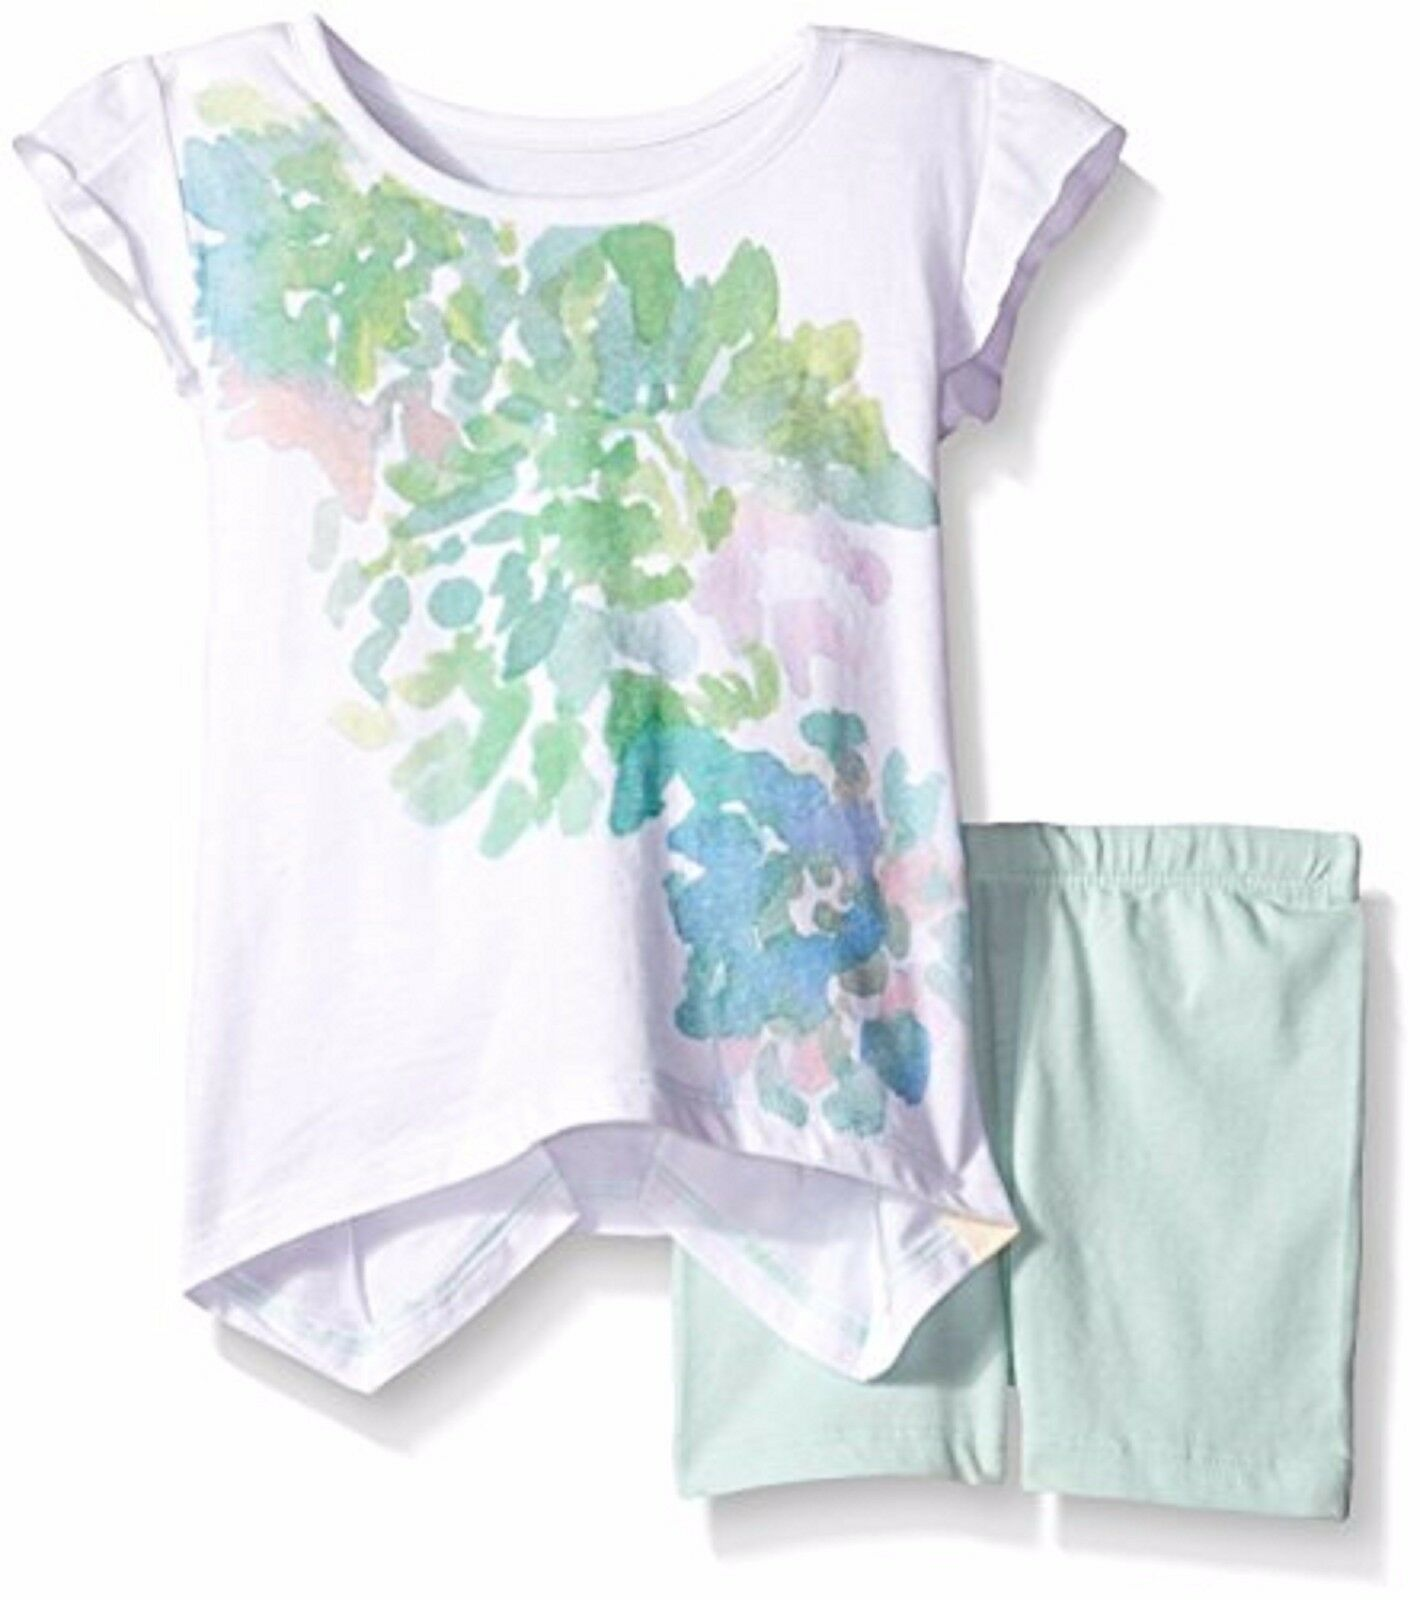 NWT 2 Set of BURT'S BEES baby Girl Organic Floral Tee & Bike